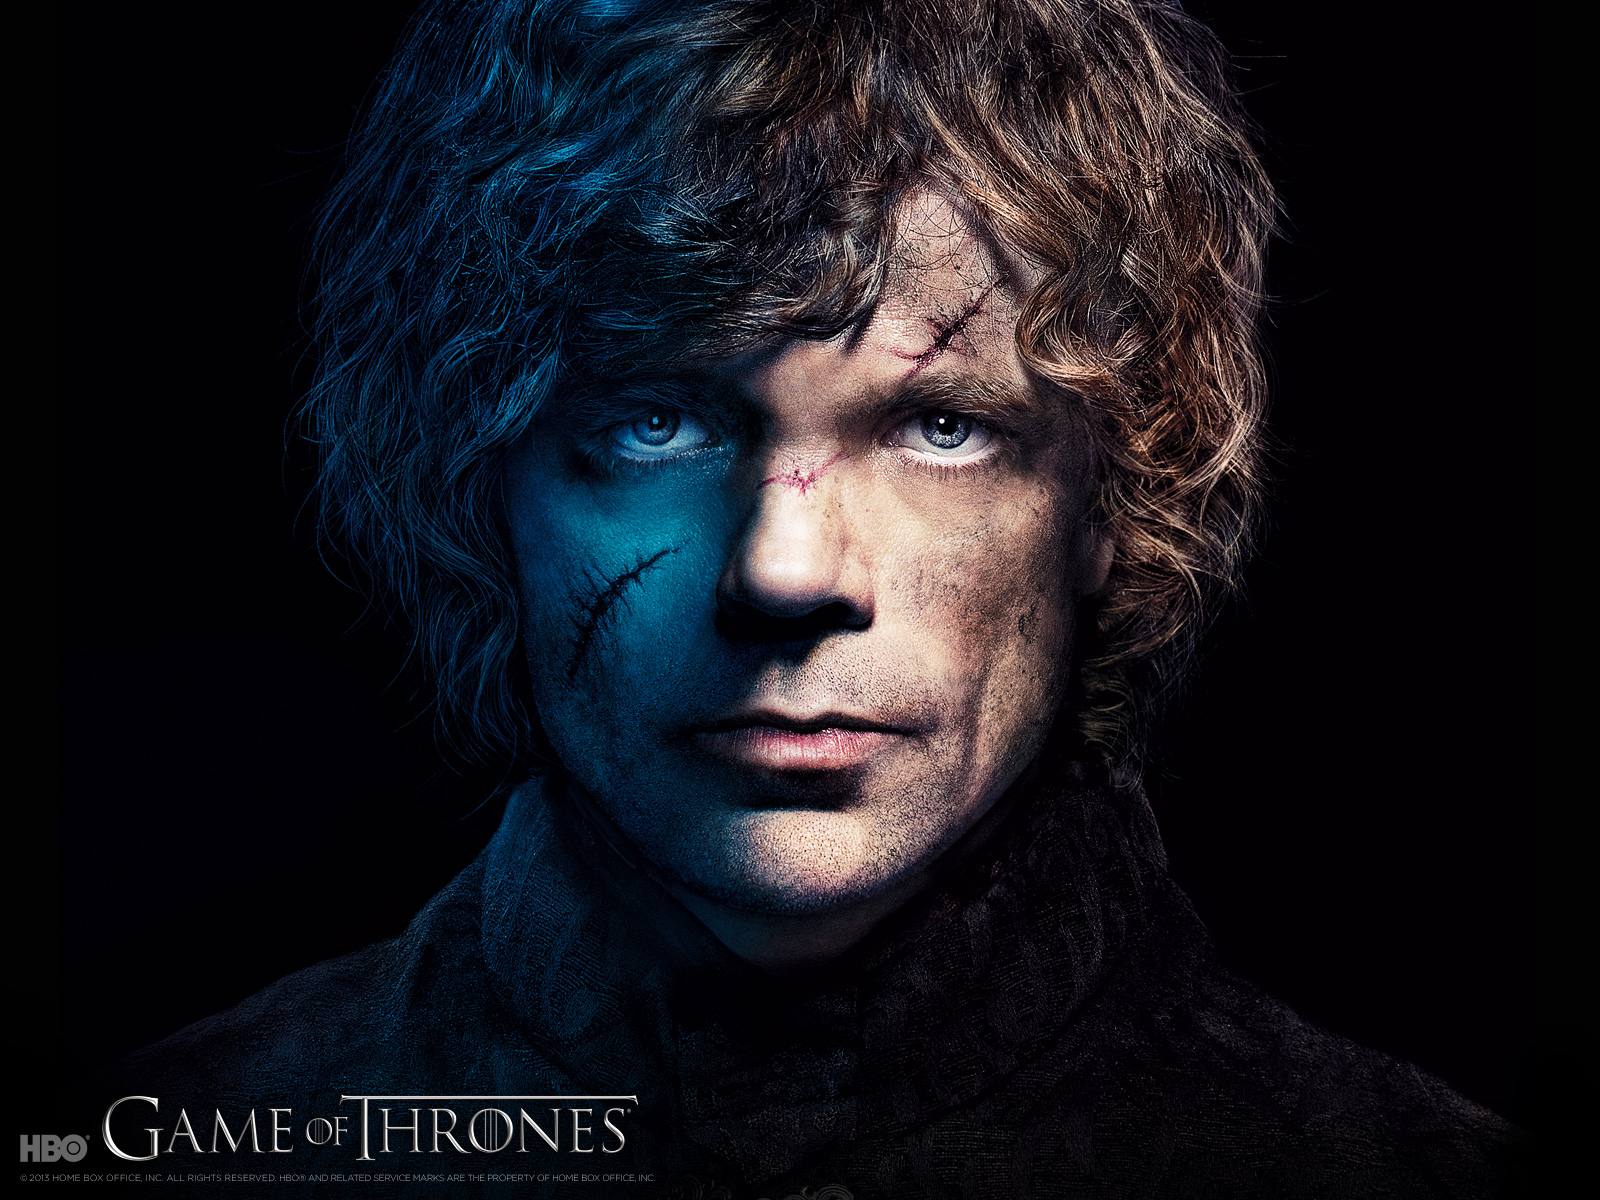 Peter Dinklage Wallpapers Peter Dinklage Wallpaper High Definition High Quality Widescreen